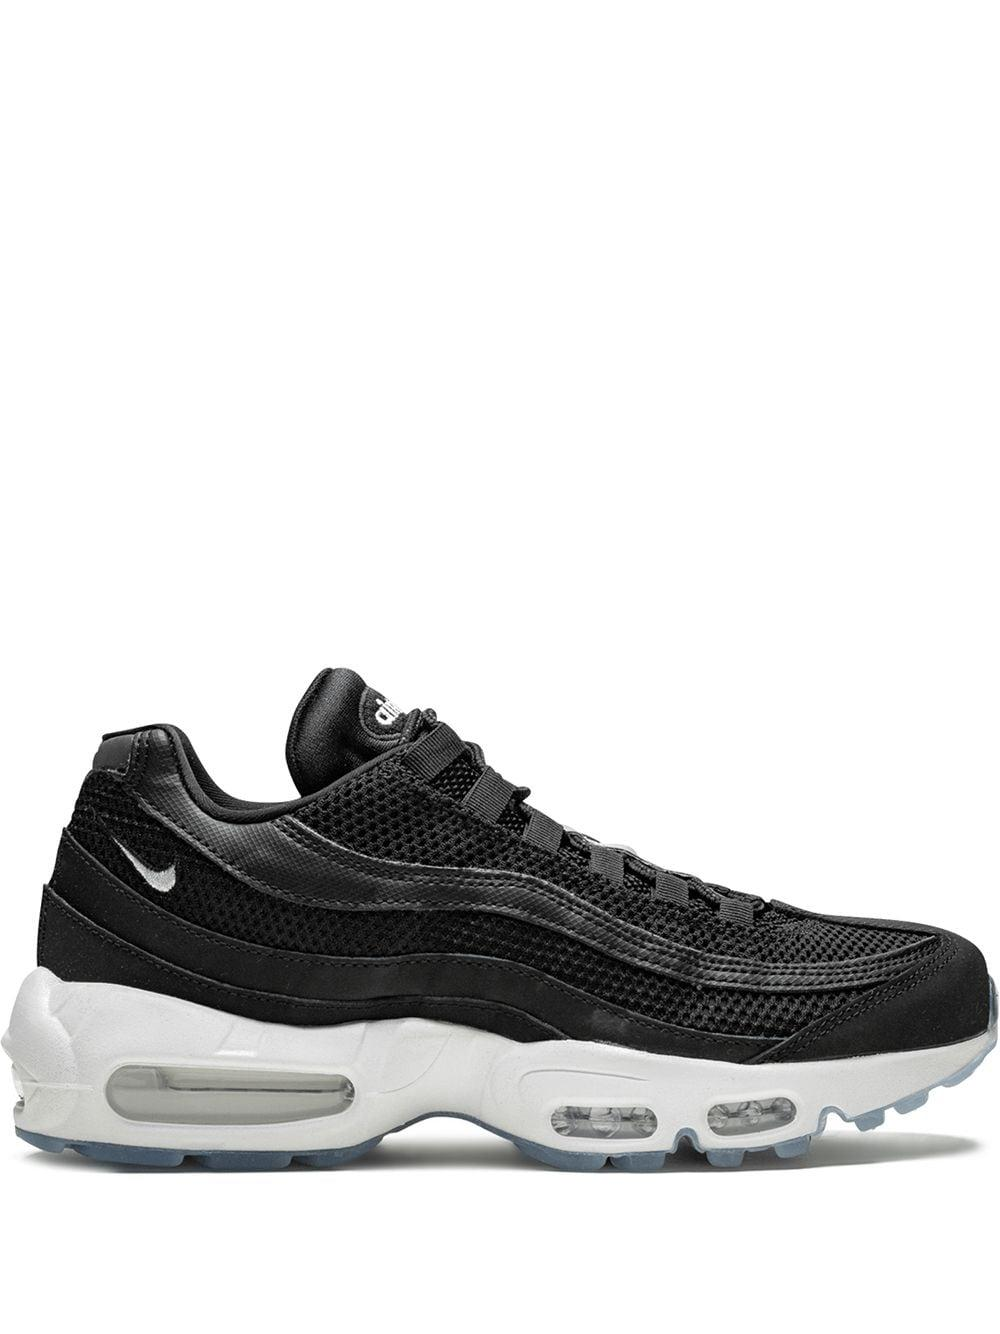 Nike Leather Air Max 95 Essential